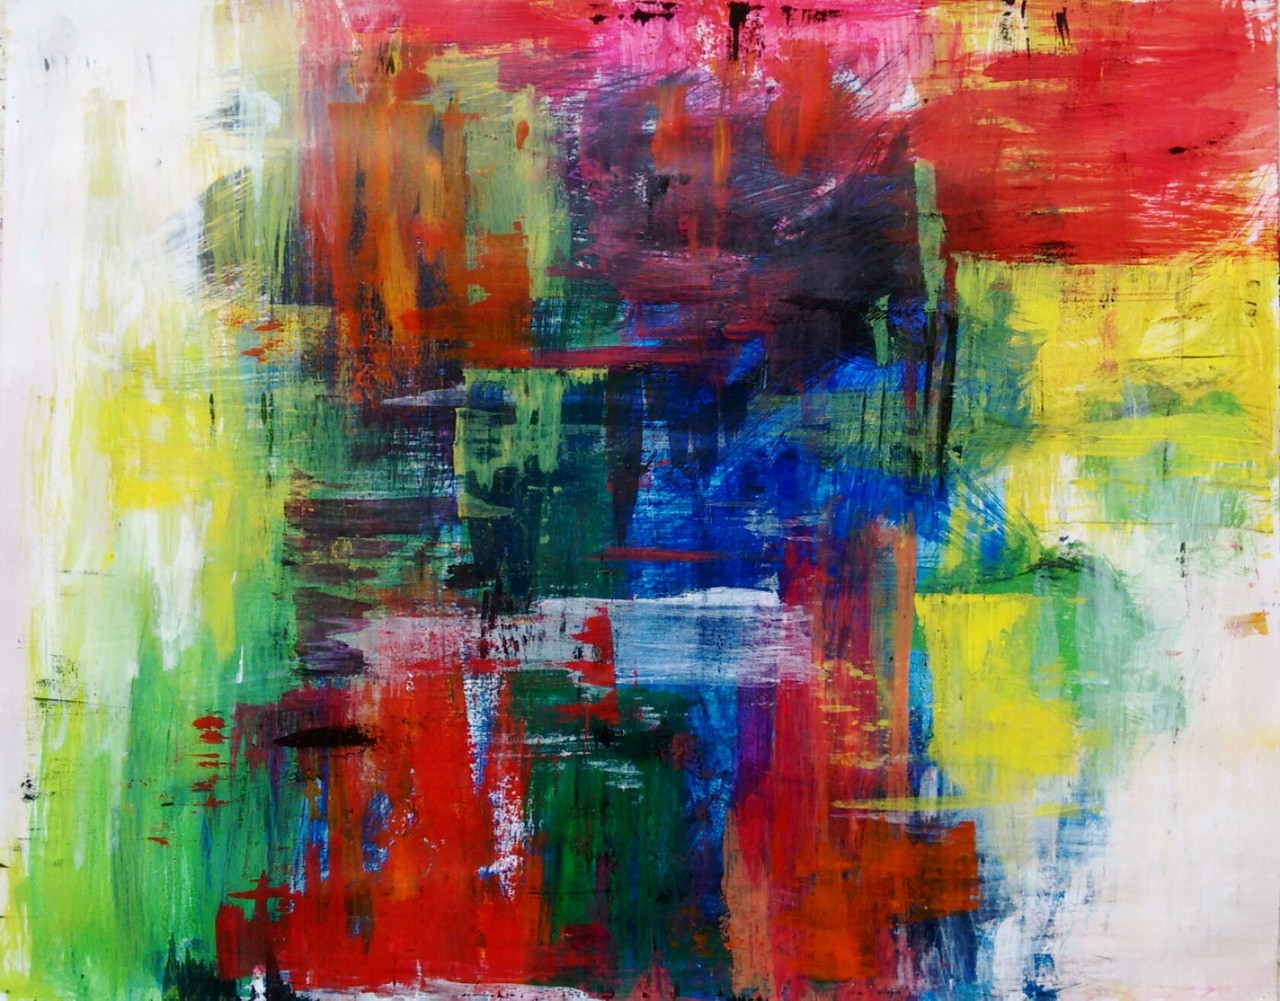 b28e11a3b Modern art , inspirational, colourful, Bright, Vibrant , about life ,The  Colour